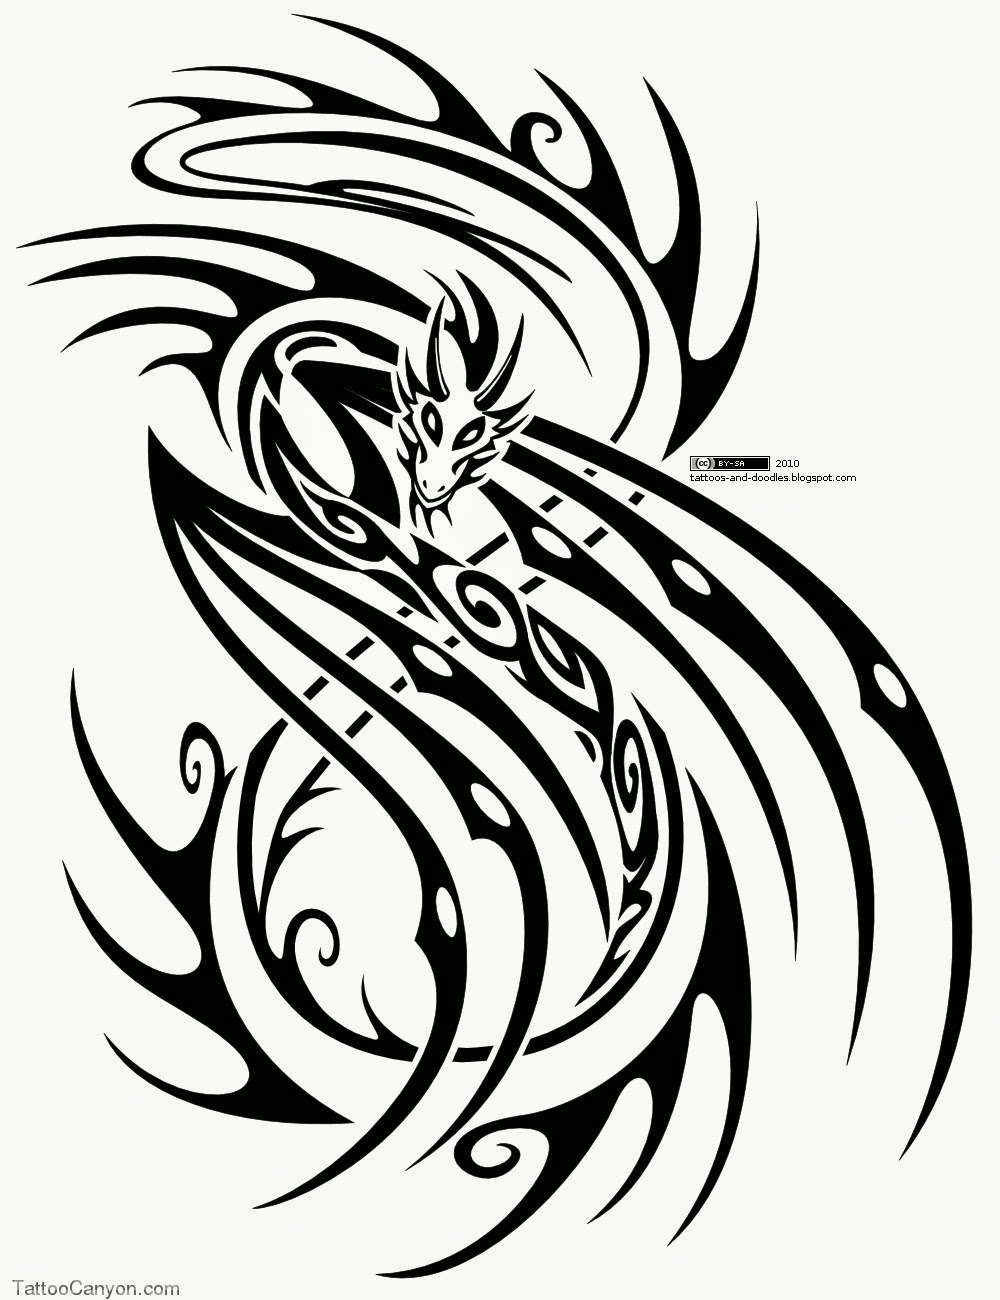 Free tattoos designs download - Free Pictures Tattoo Designs